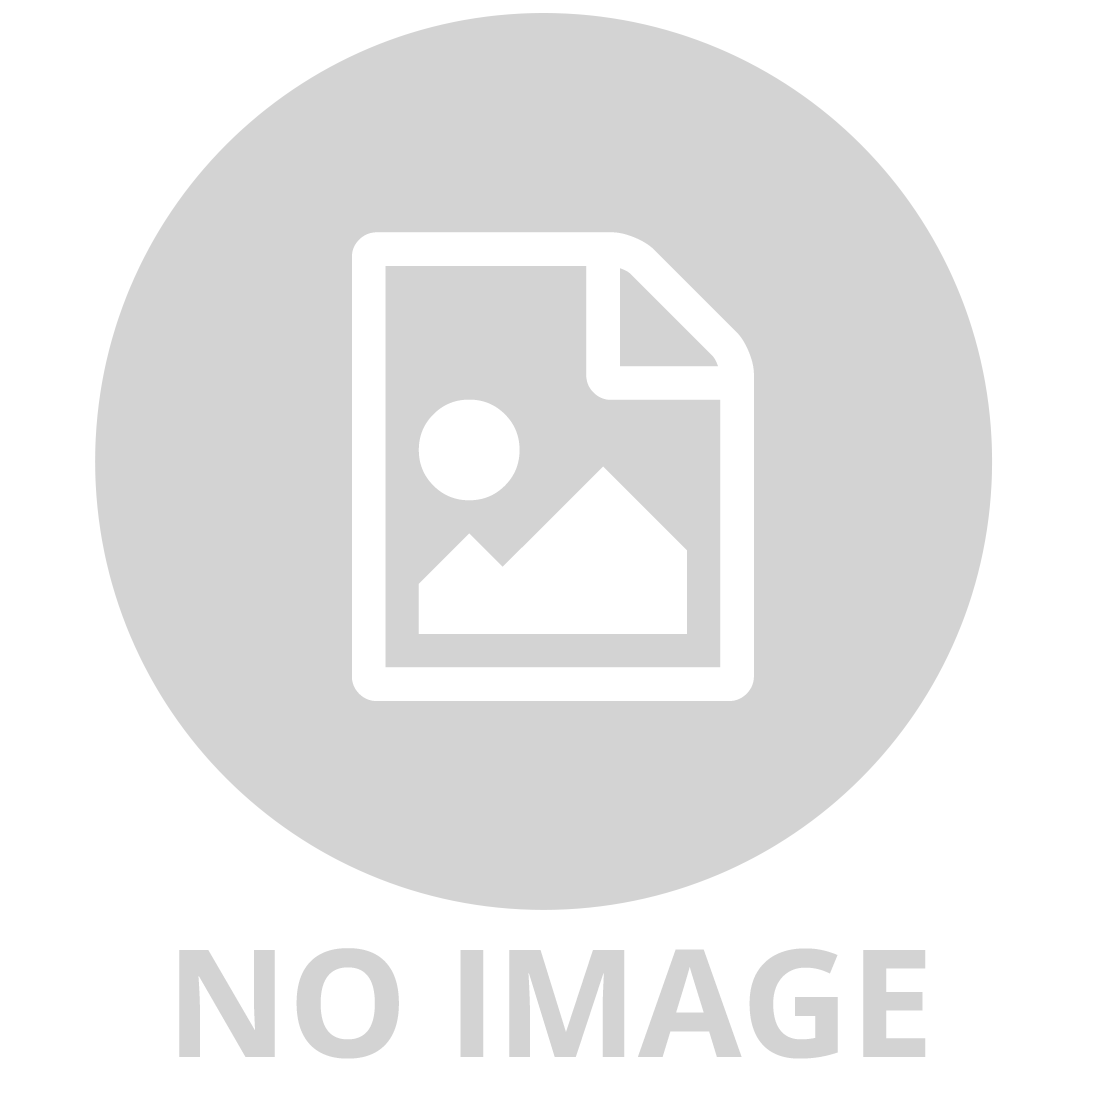 SALLY FAY DOLLS UMBRELLA STROLLER